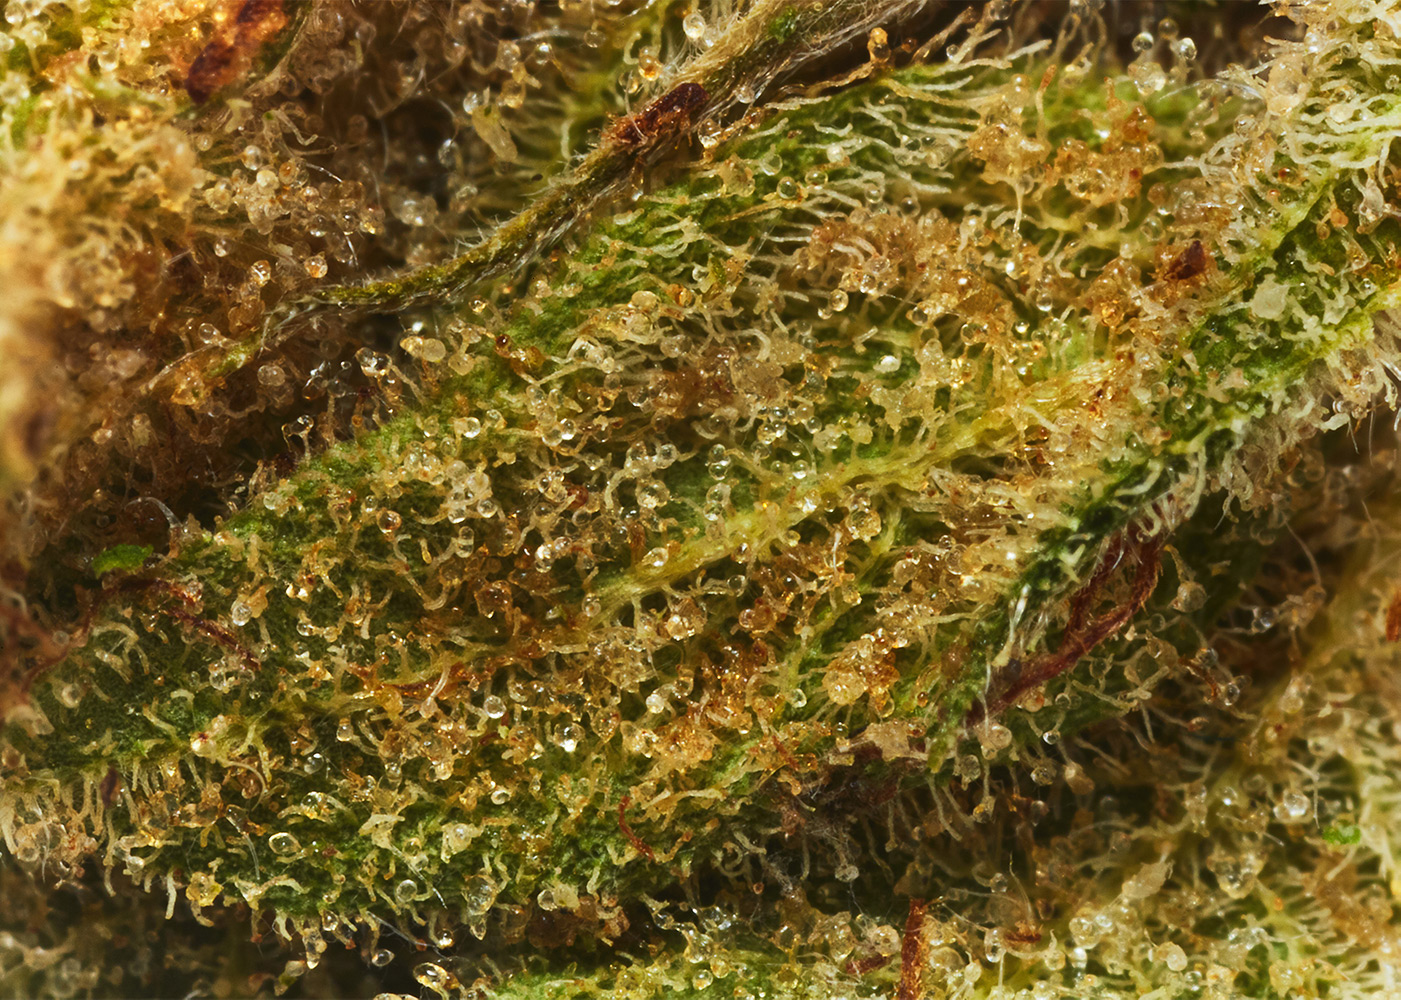 Lowell_Farms_MissUSA_Cannabis_Flower2581.jpg